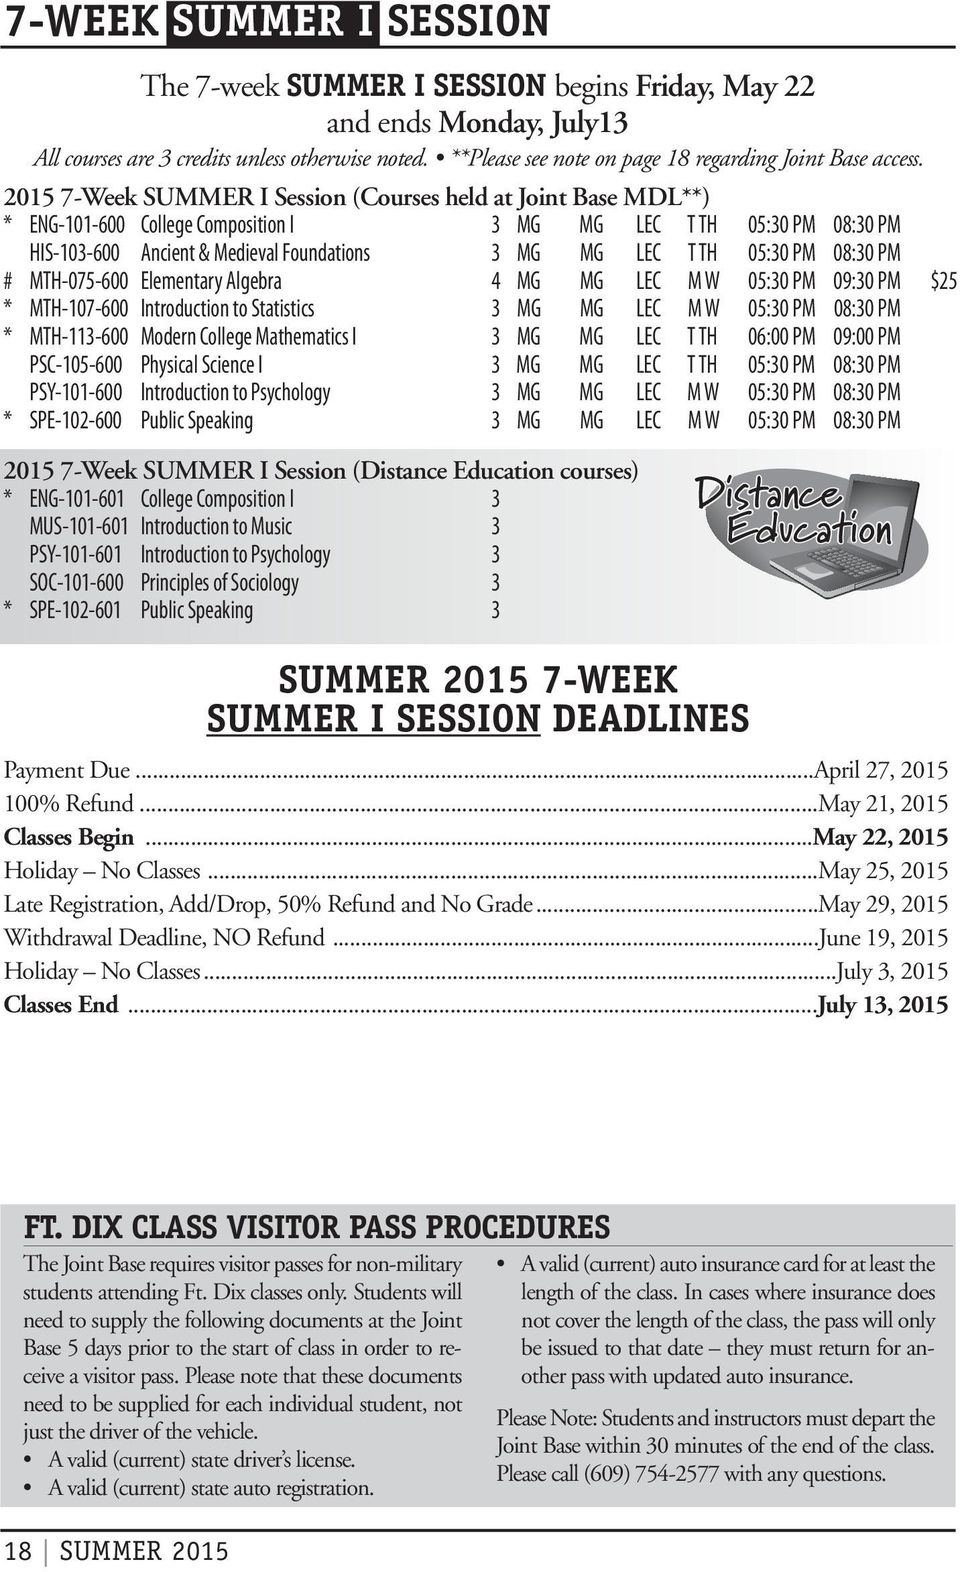 2015 7-Week SUMMER I Session (Courses held at Joint Base MDL**) * ENG-101-600 College Composition I 3 MG MG LEC T TH 05:30 PM 08:30 PM HIS-103-600 Ancient & Medieval Foundations 3 MG MG LEC T TH